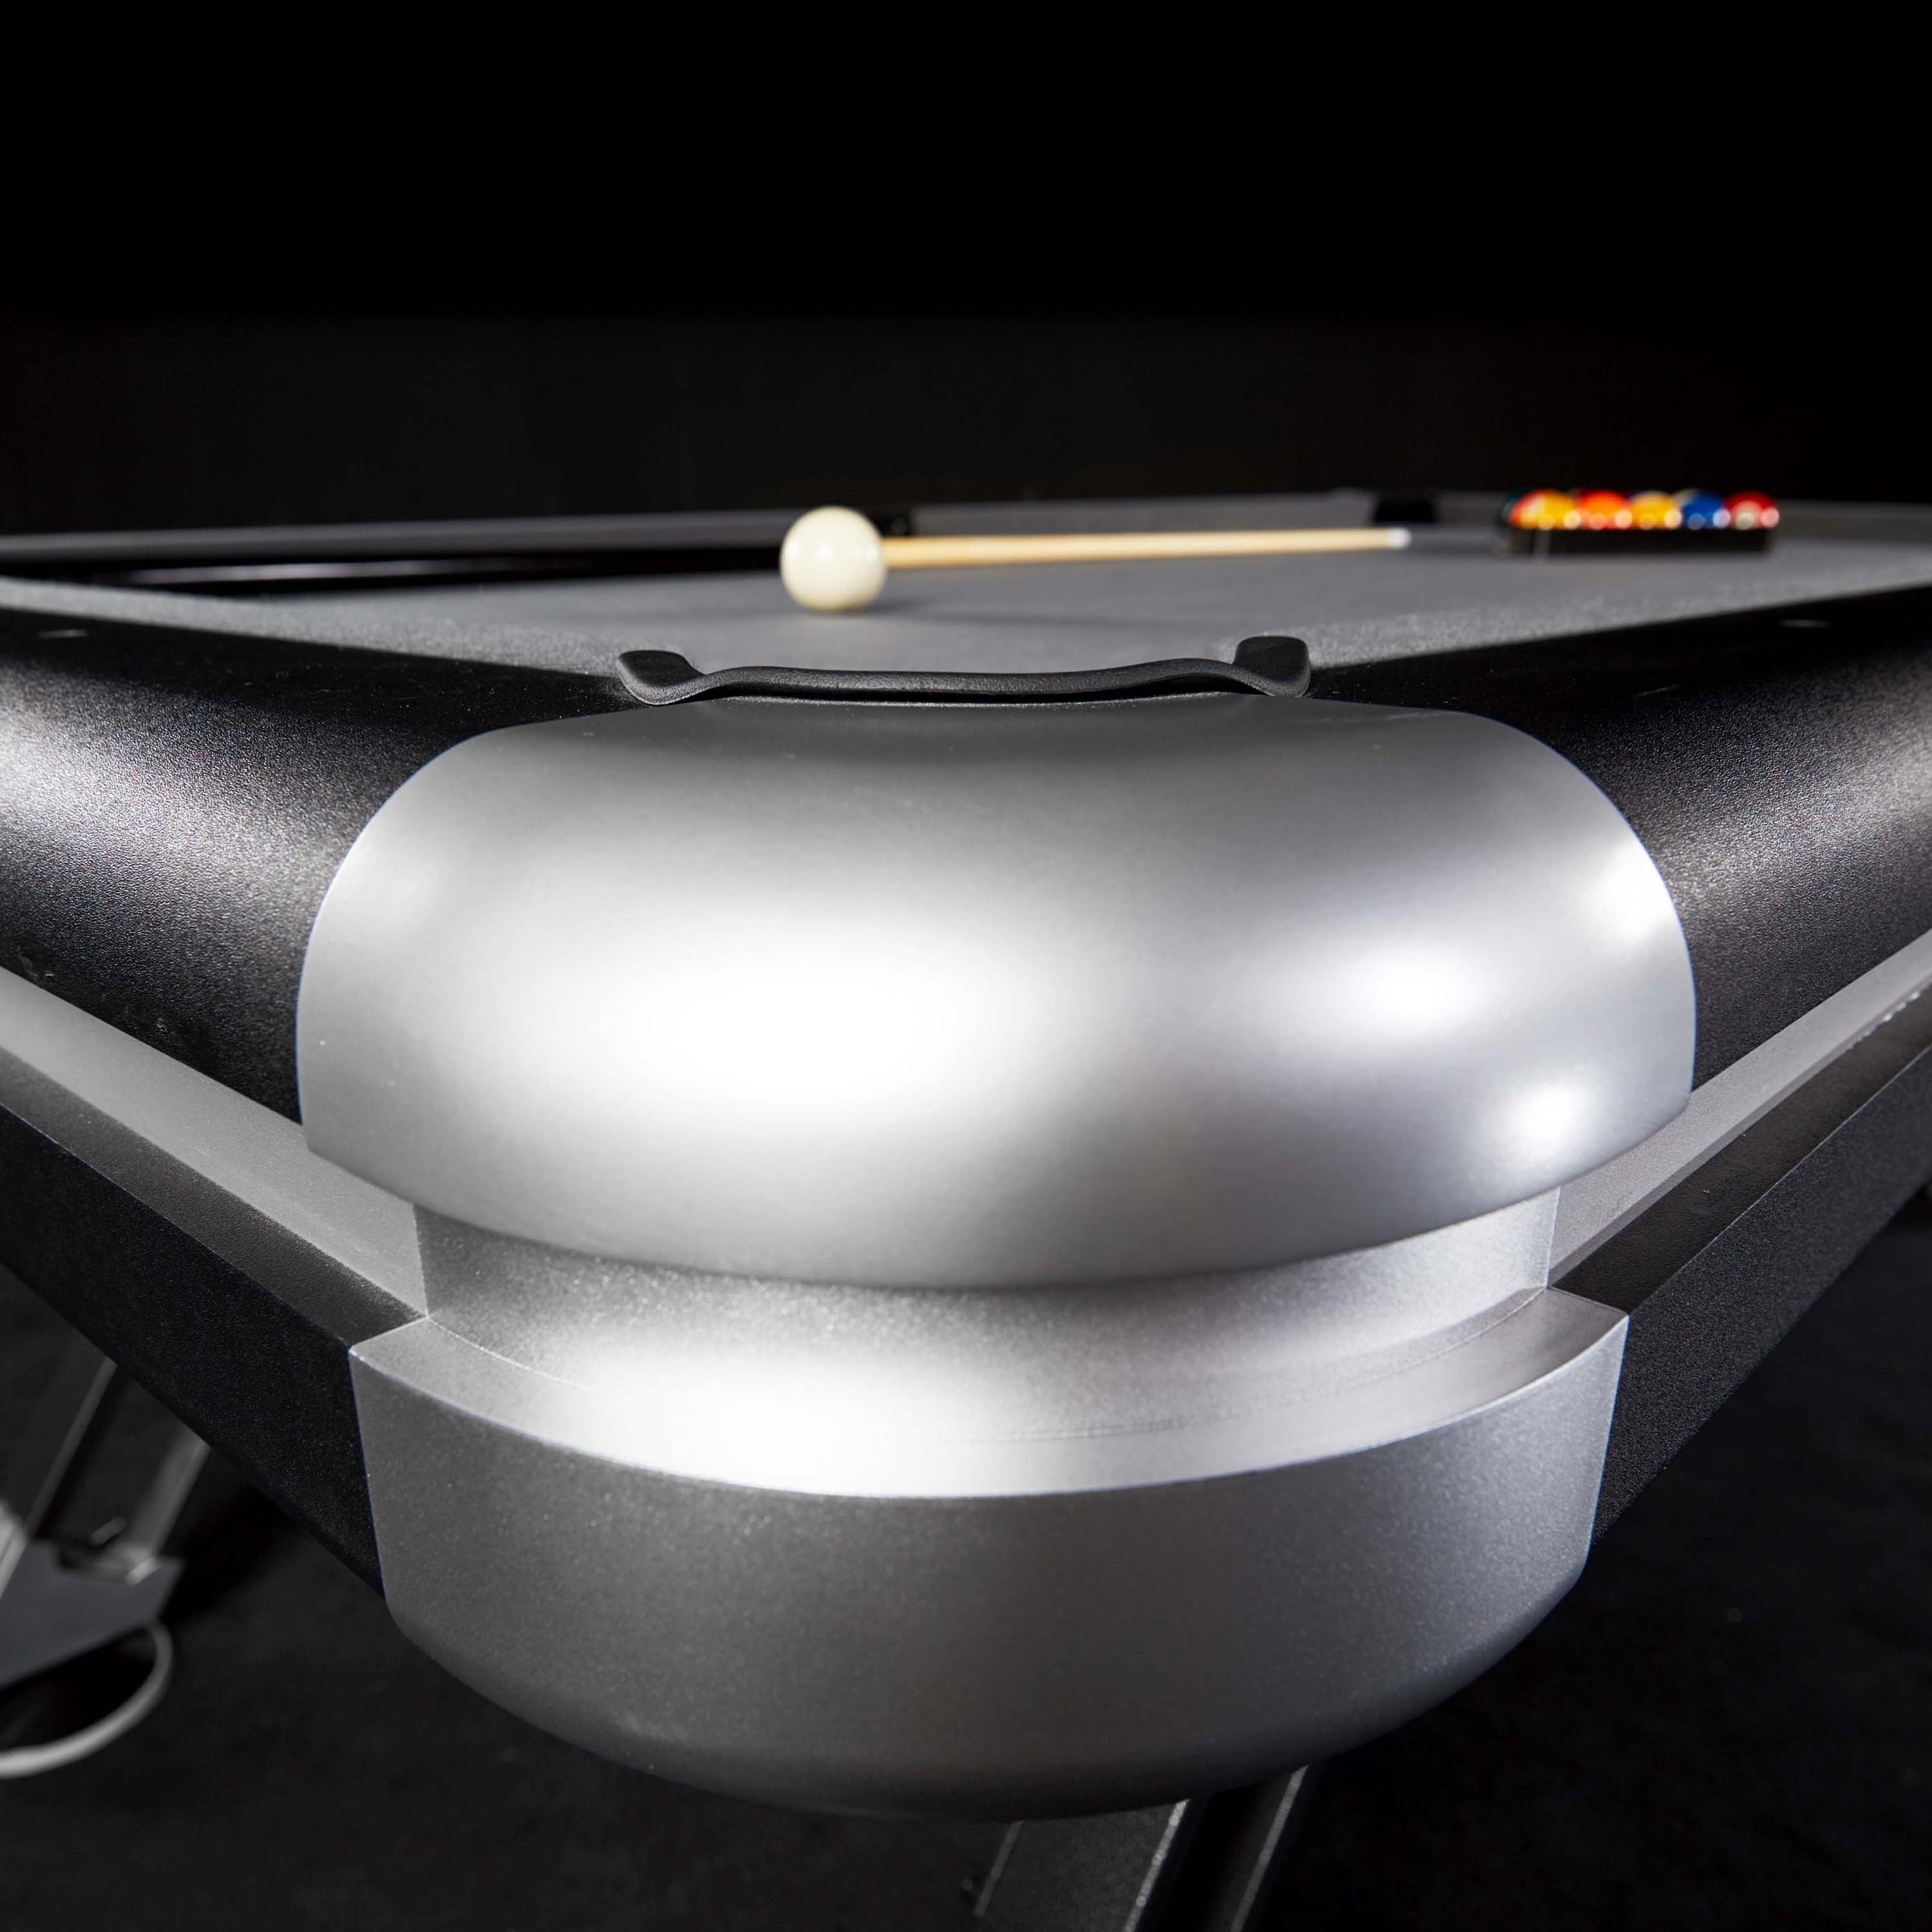 Shop MD Sports Titan Ft Pool Table Ships To Canada Overstock - Md pool table